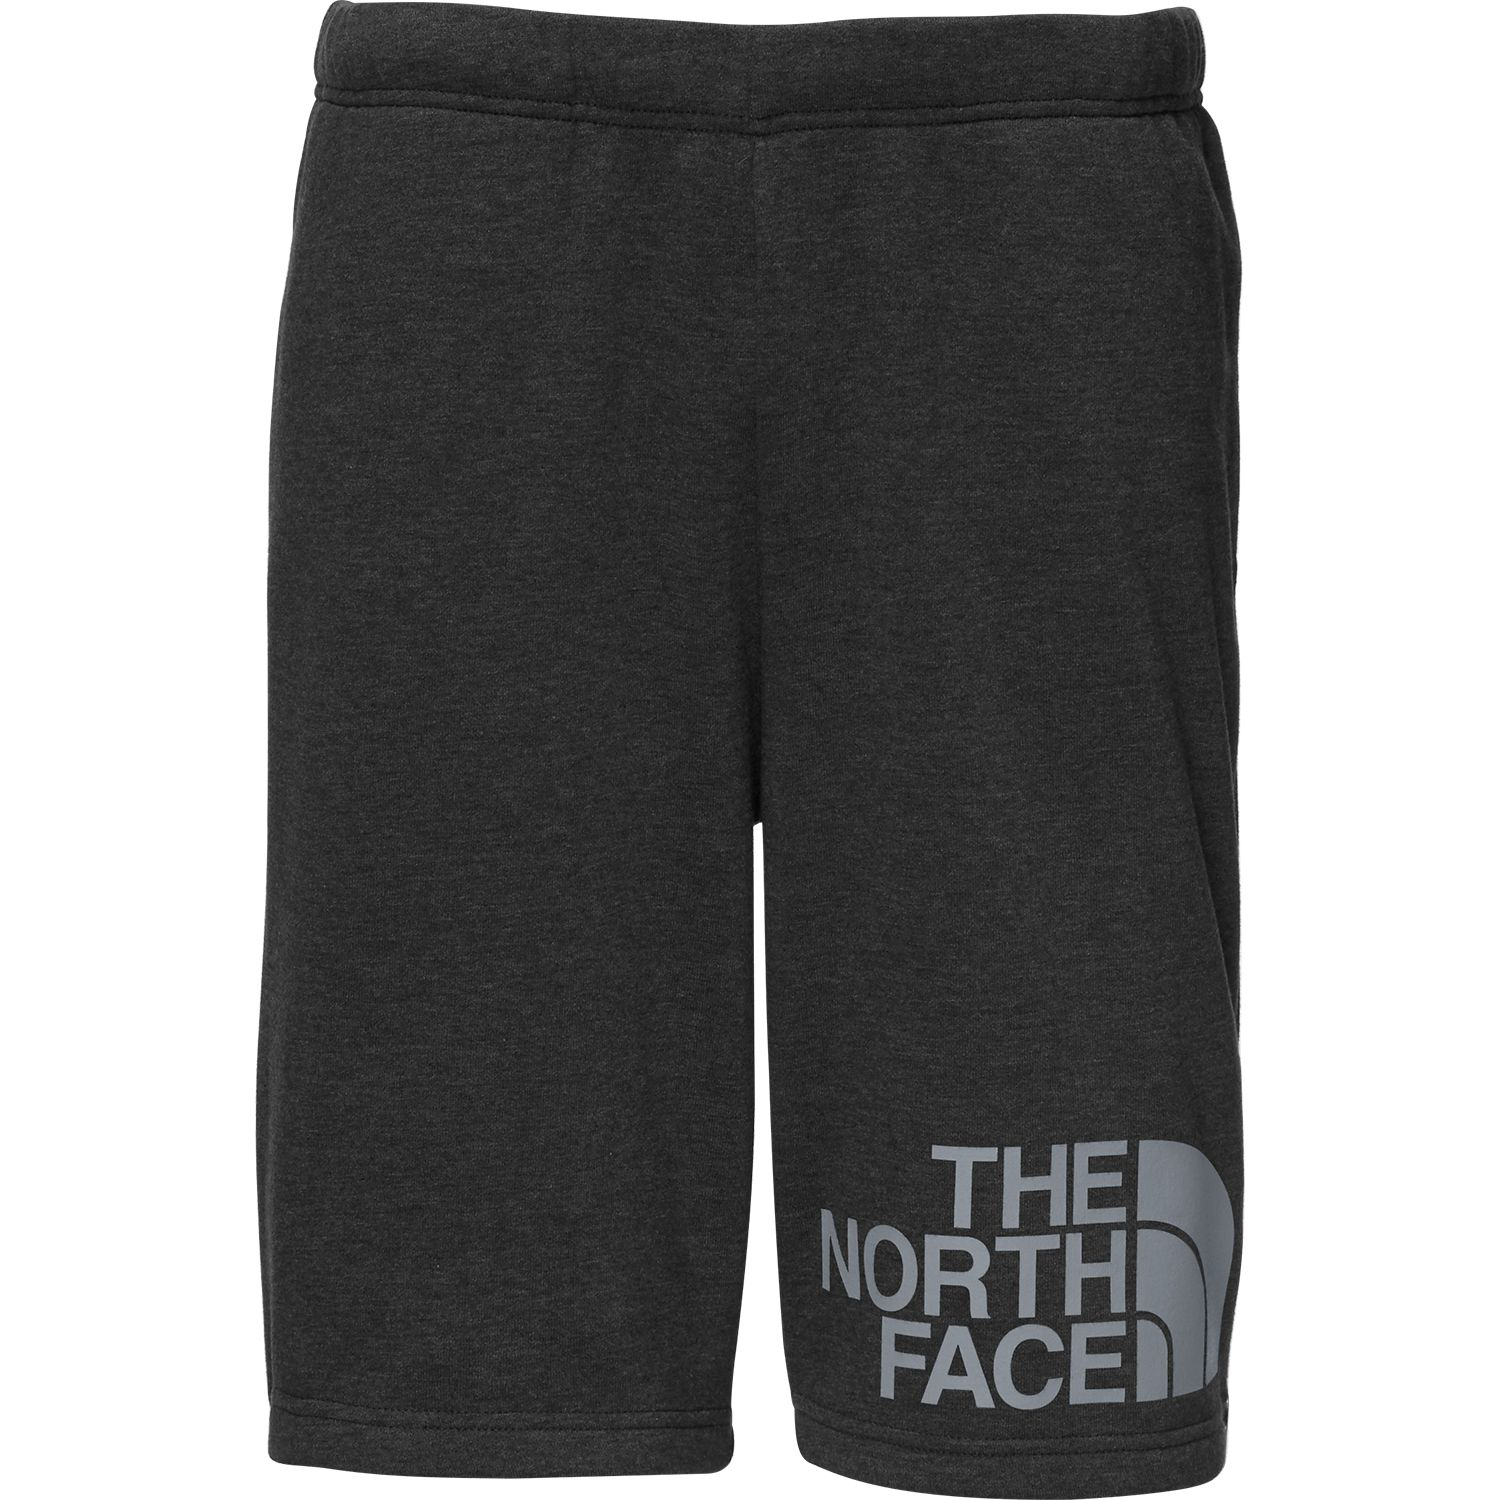 0eb5aa77255 The North Face Never Stop Short - Men s